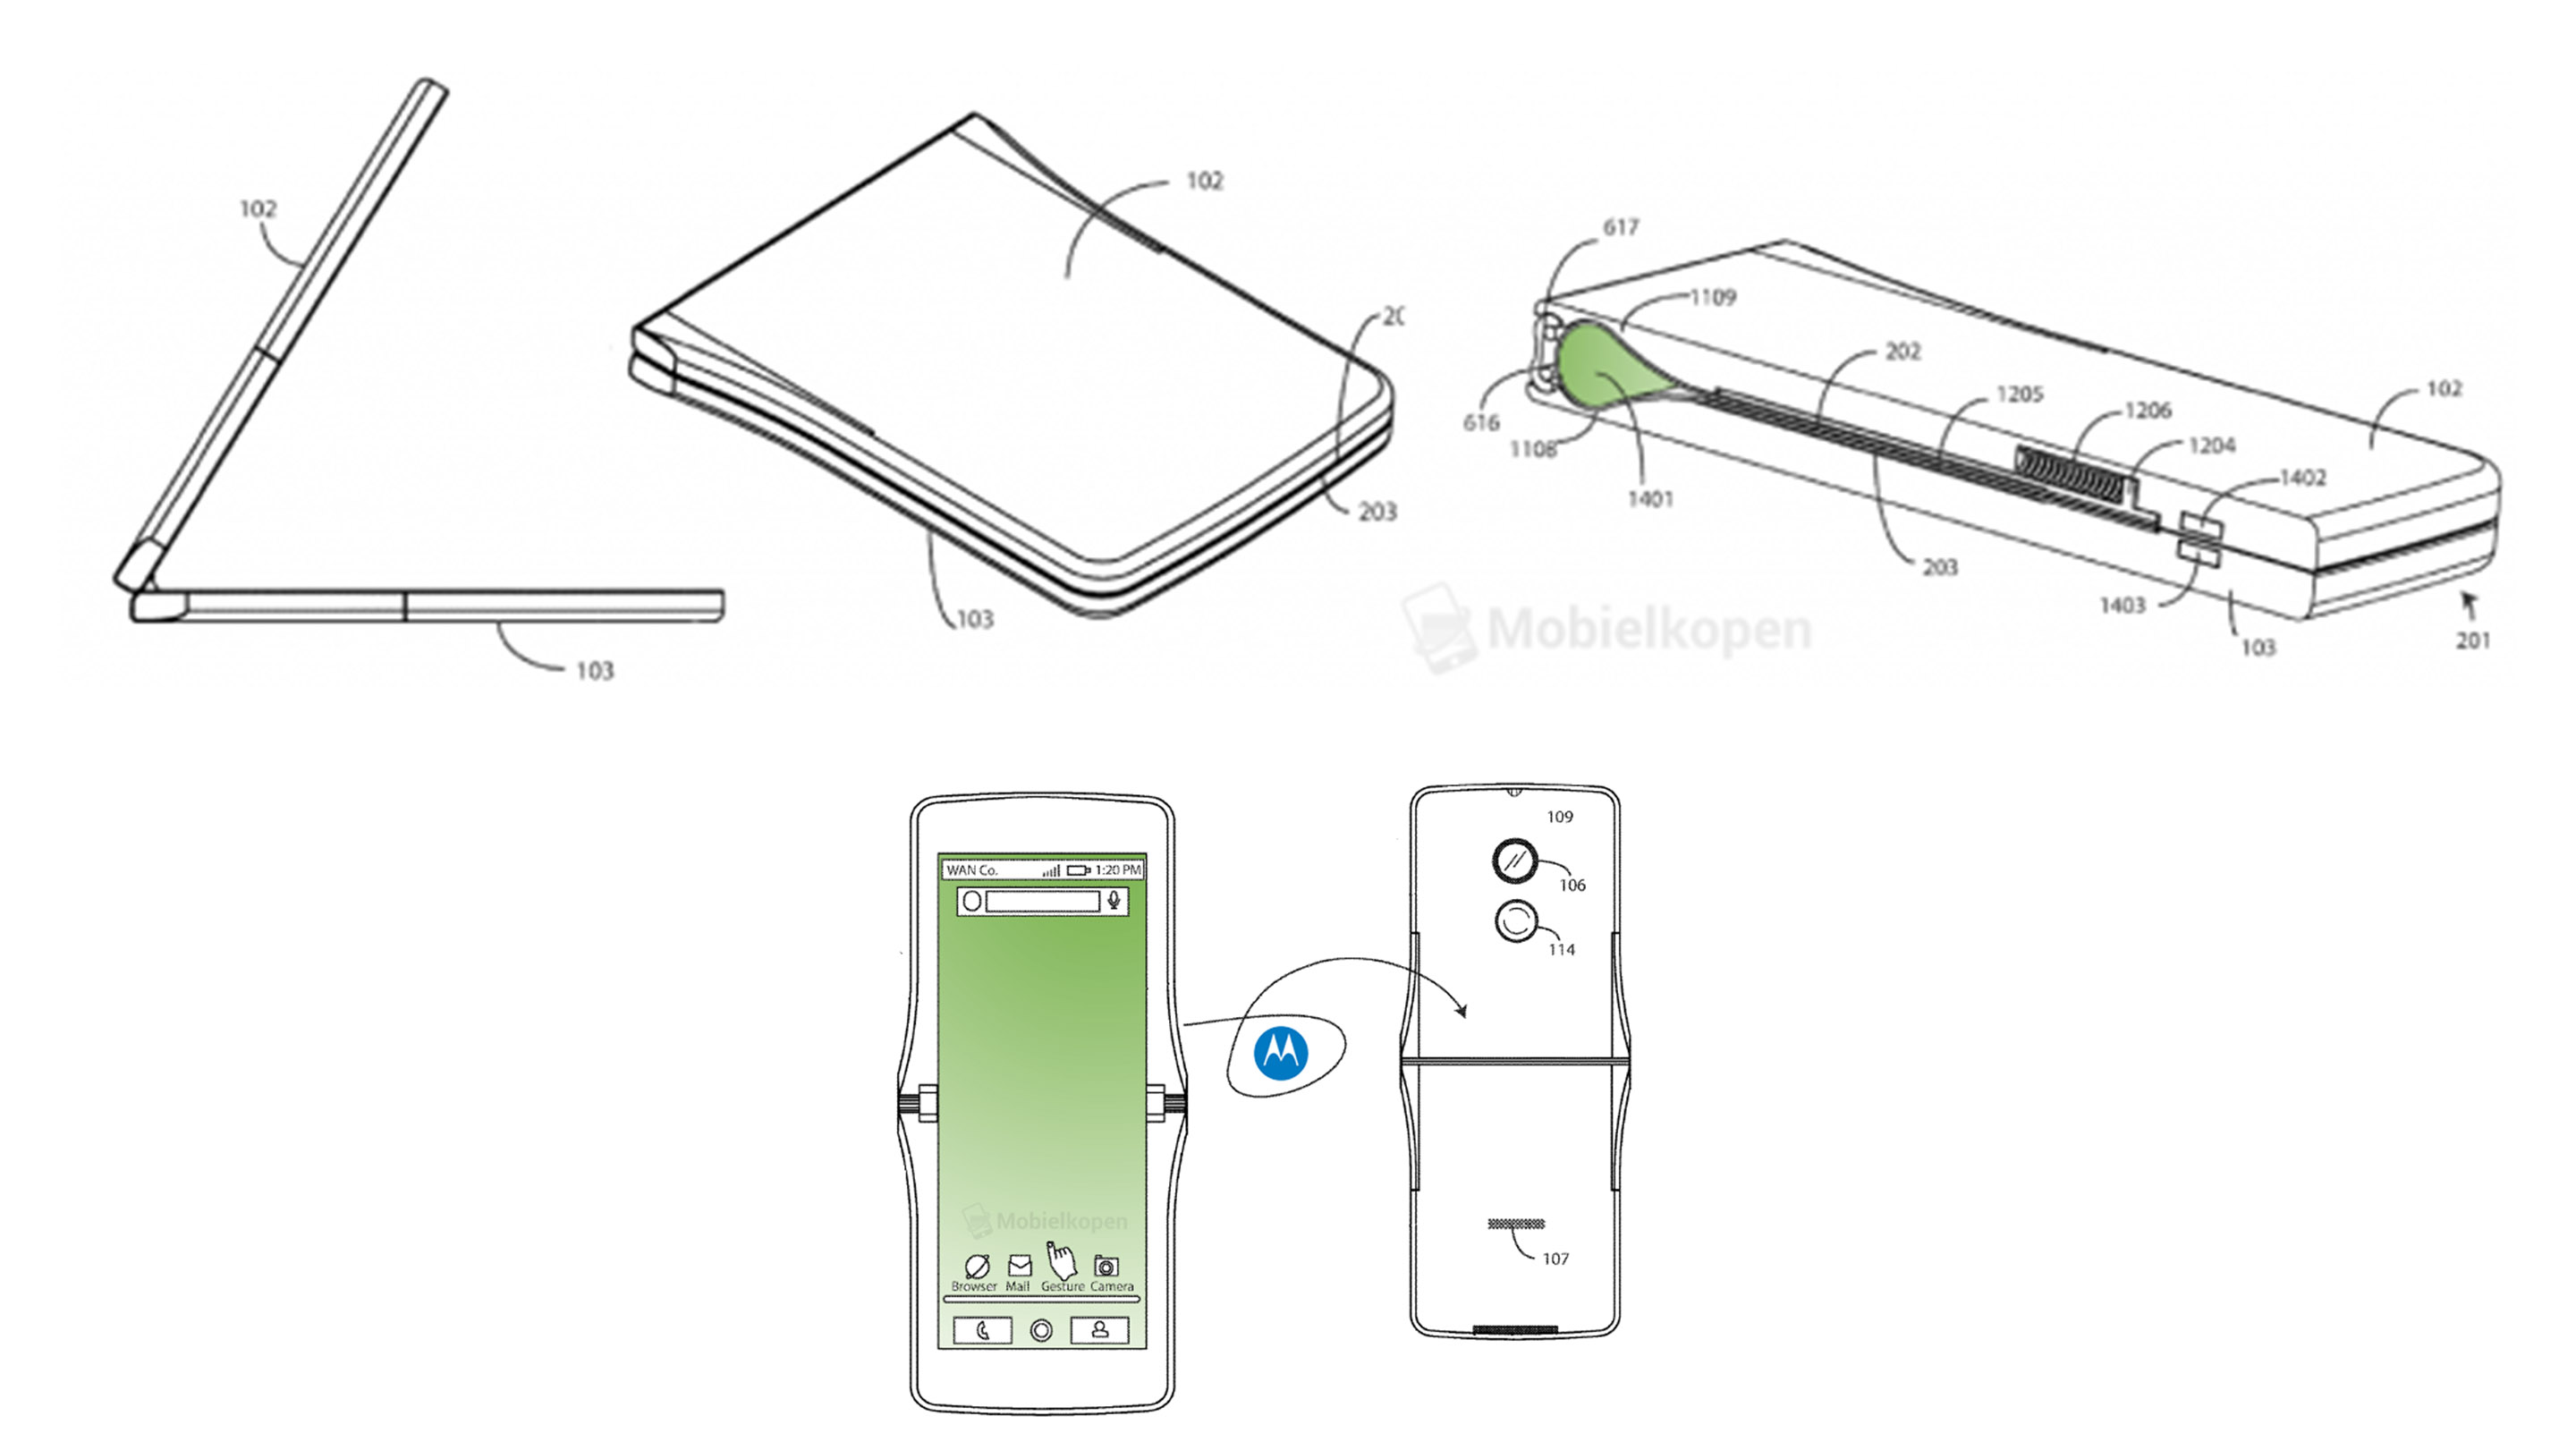 Motorola patent shows off what could be the modern Razr